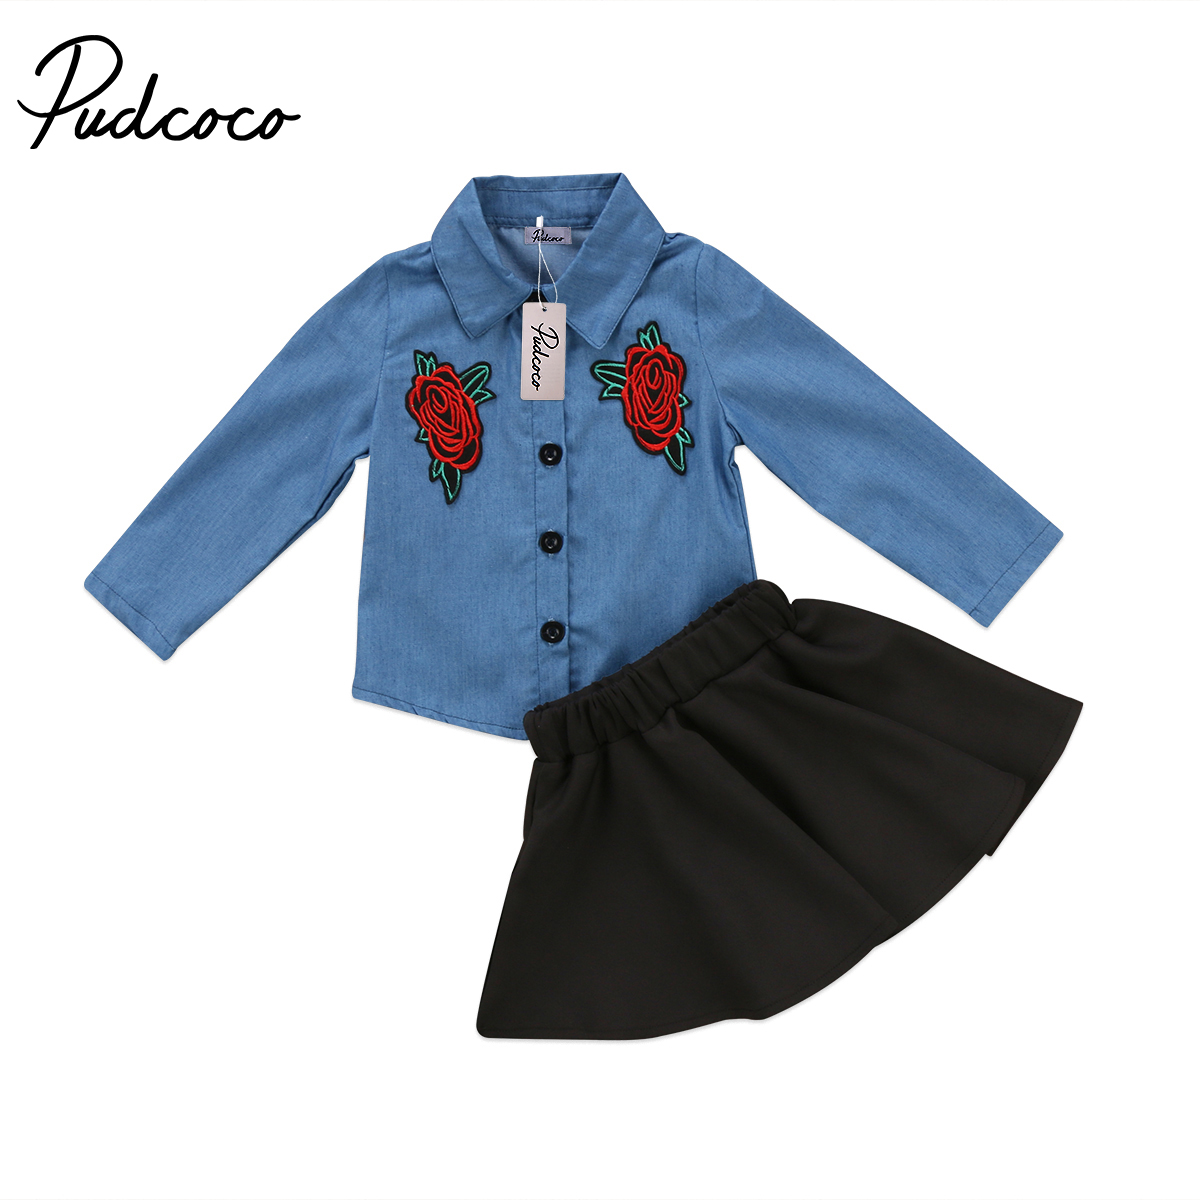 2PCS Girls Outfits Kids Baby Girls Denim Shirts Floral Tops+Black Skirts Embroidery Outfits Girls Summer Autumn Clothes Set newborn toddler girls summer t shirt skirt clothing set kids baby girl denim tops shirt tutu skirts party 3pcs outfits set